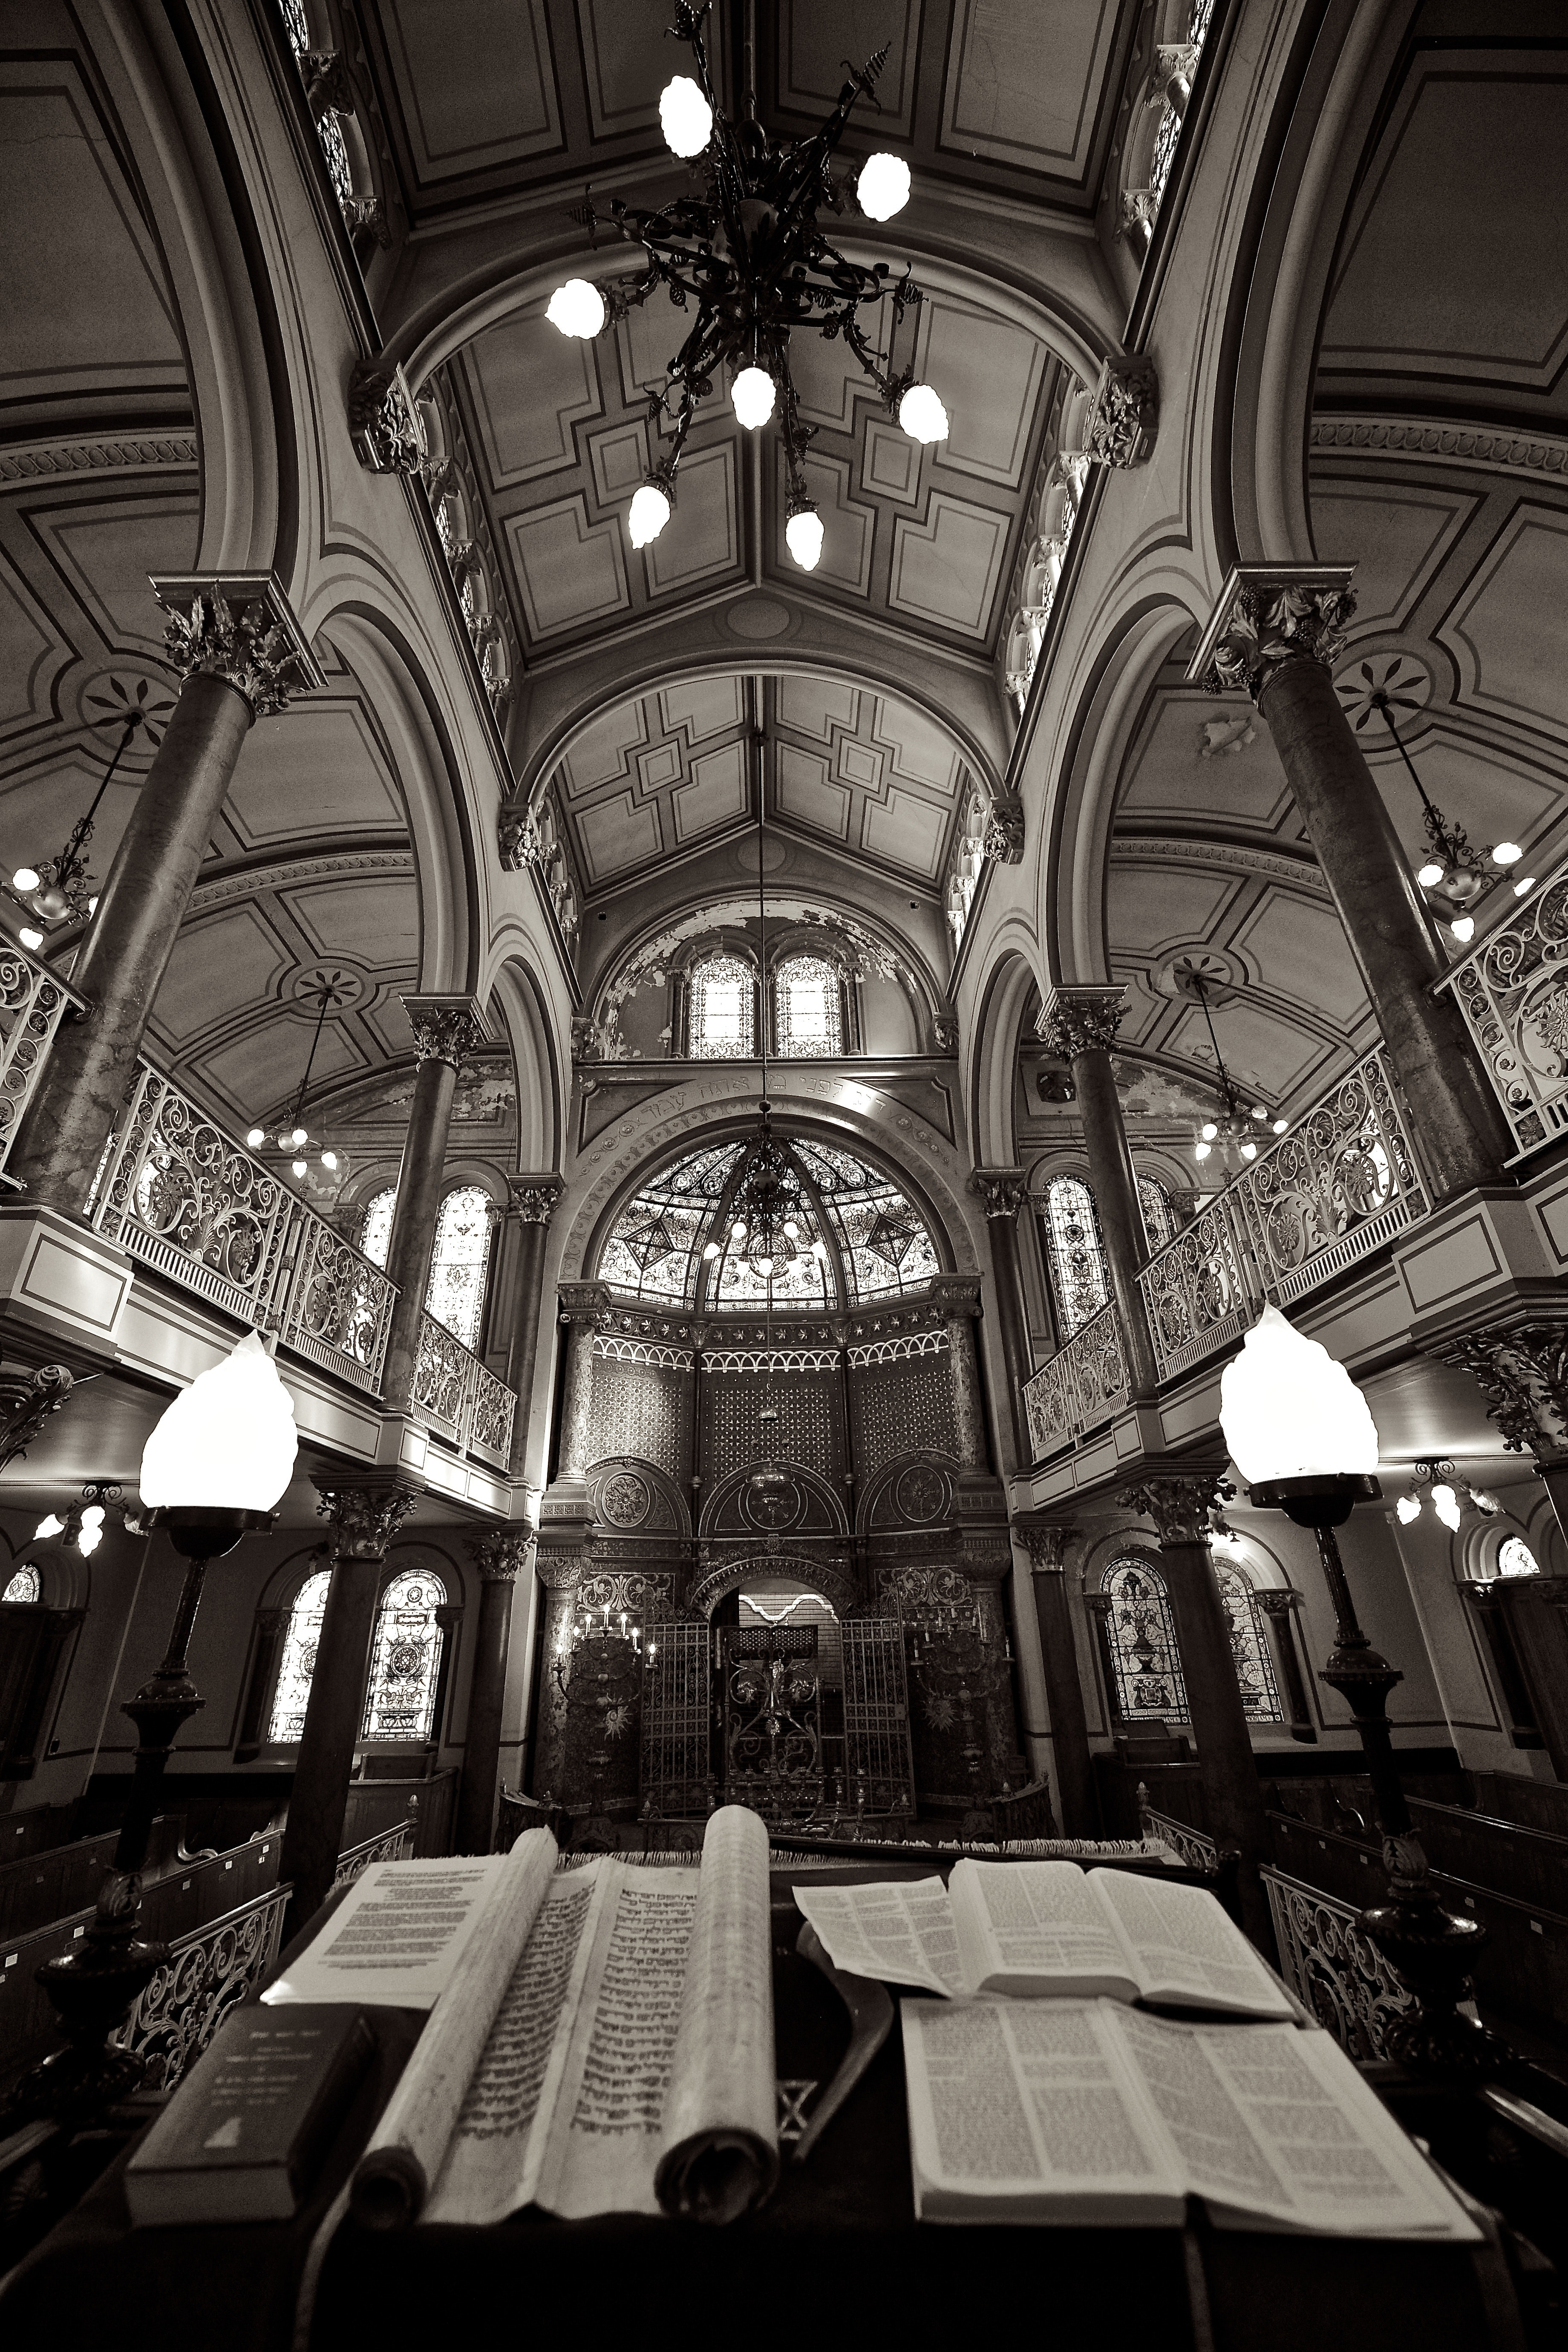 Greyscale Photography of Open Books on Table Inside Dome Building, Architecture, Art, Bible, Books, HQ Photo